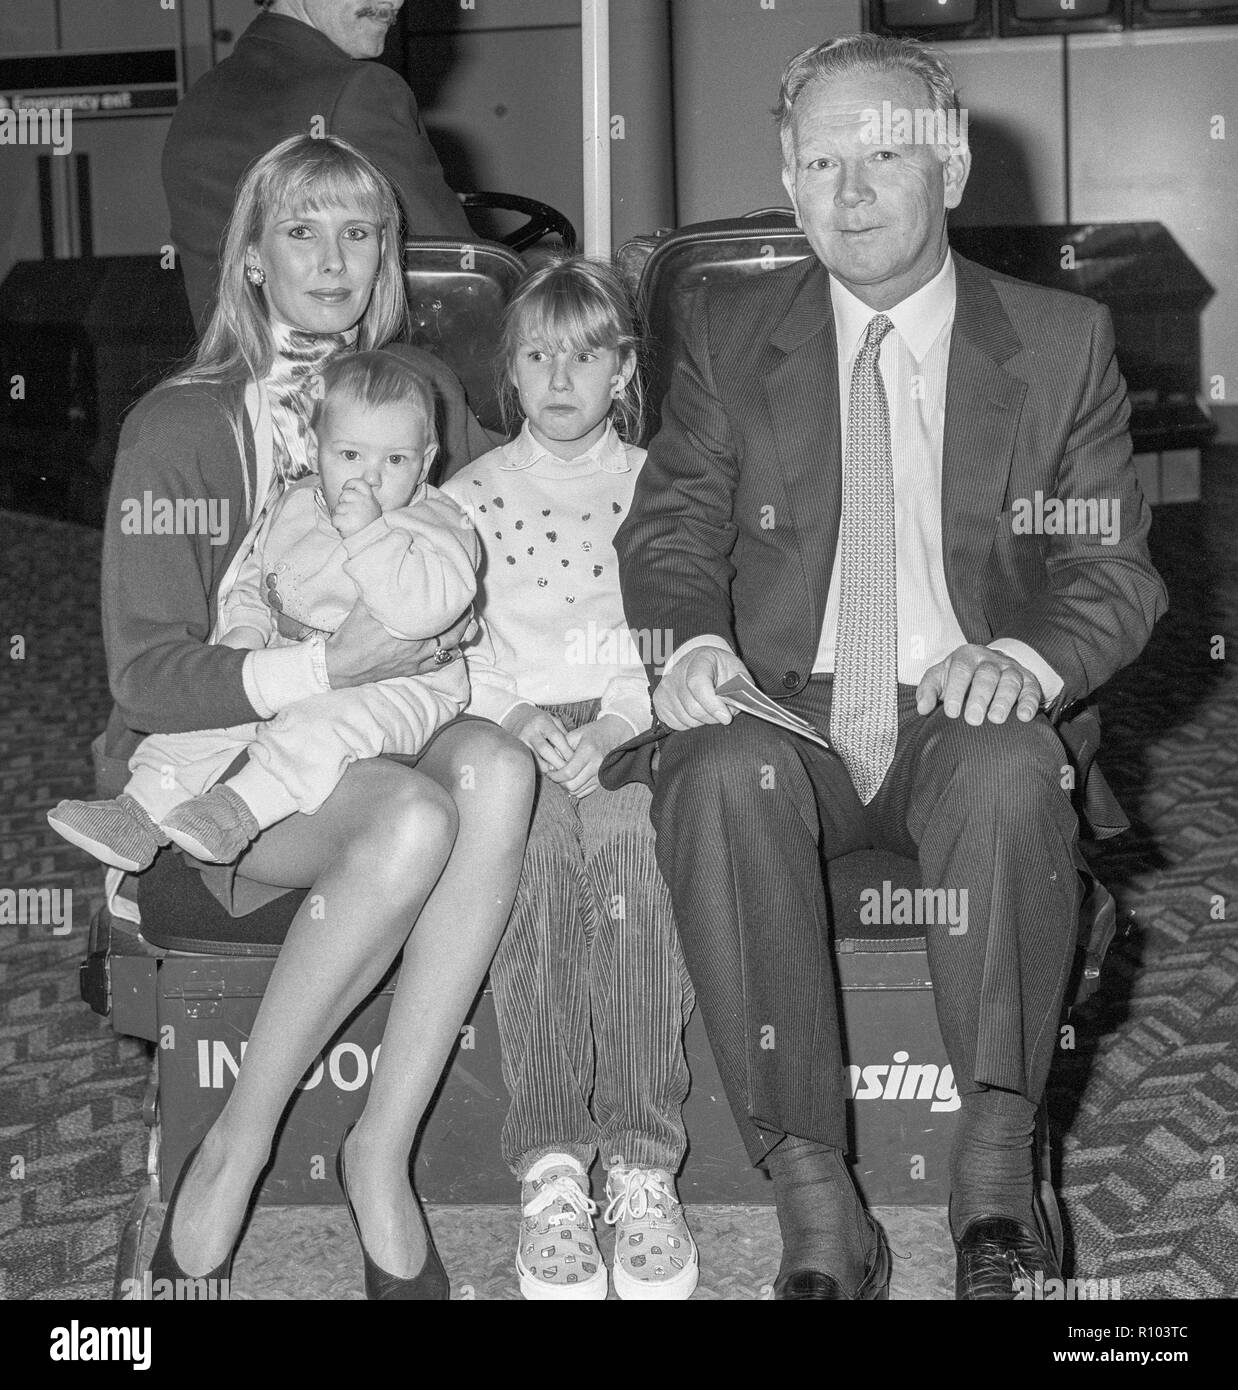 Racehorse owner and breeder Robert Sangster with wife Susan Lilley and two children  leaving Heathrow in February 1988 Stock Photo